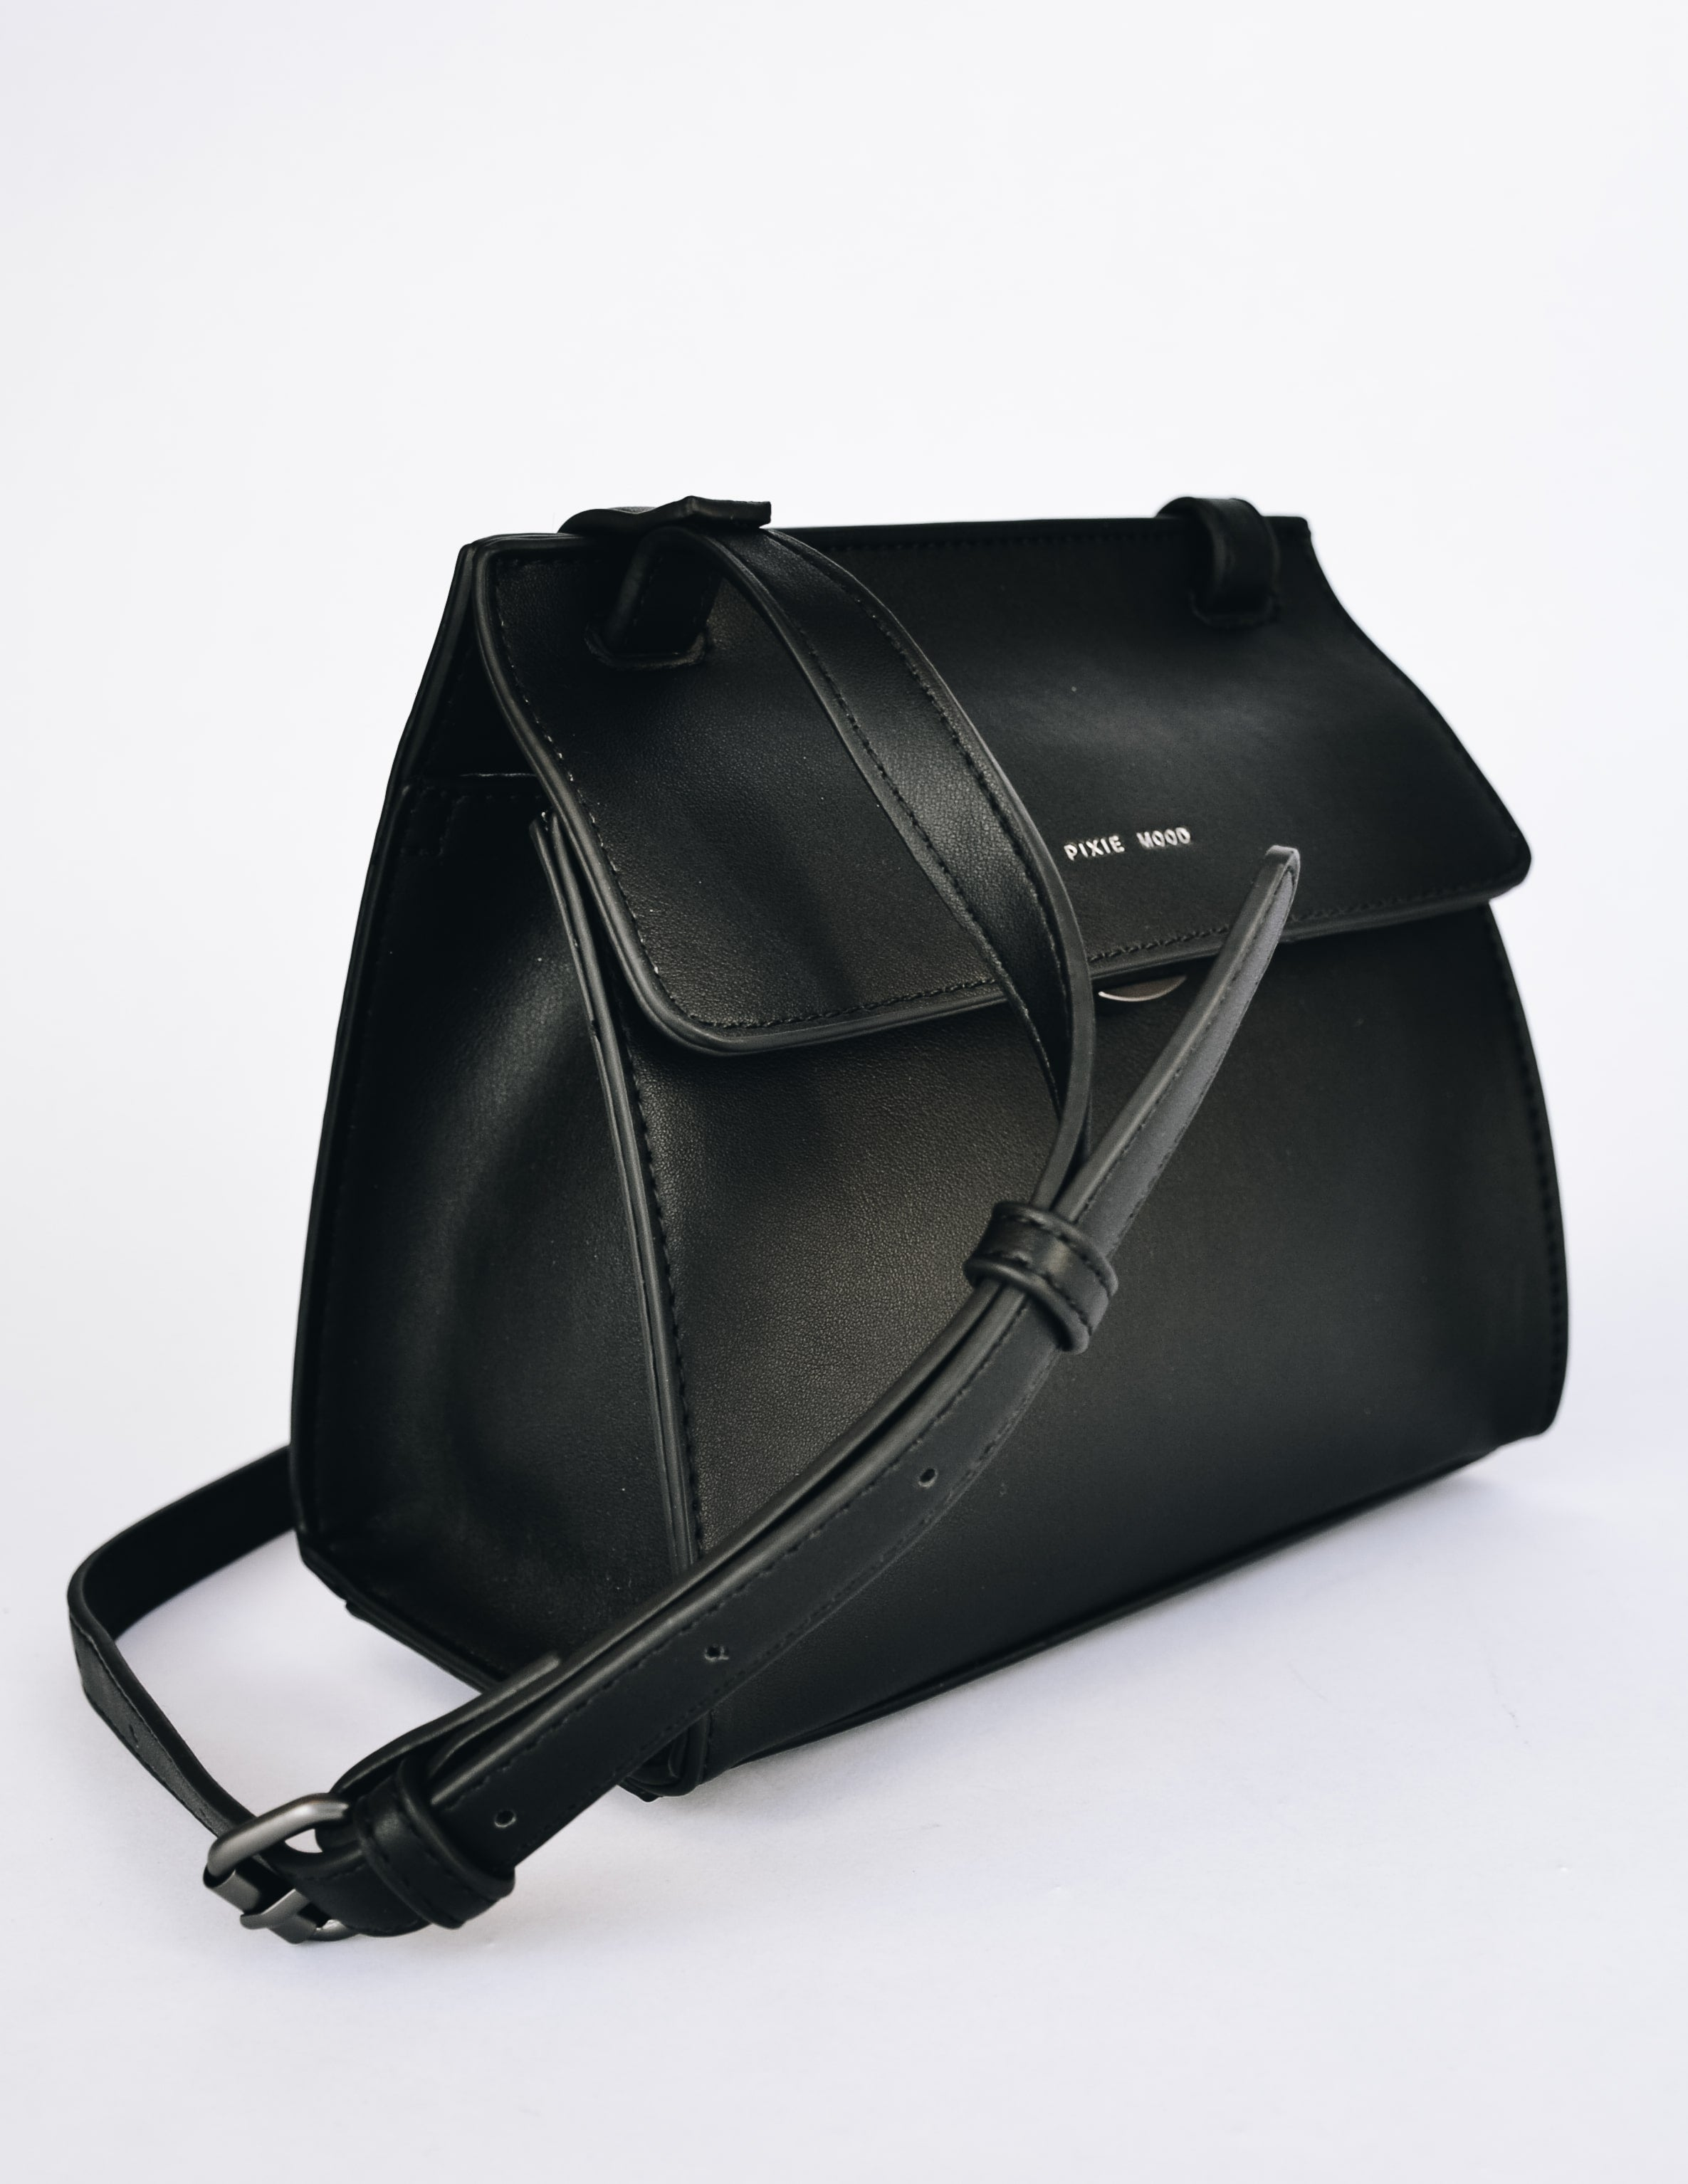 Black pixie mood christy crossbody bag showing adjustable shoulder strap